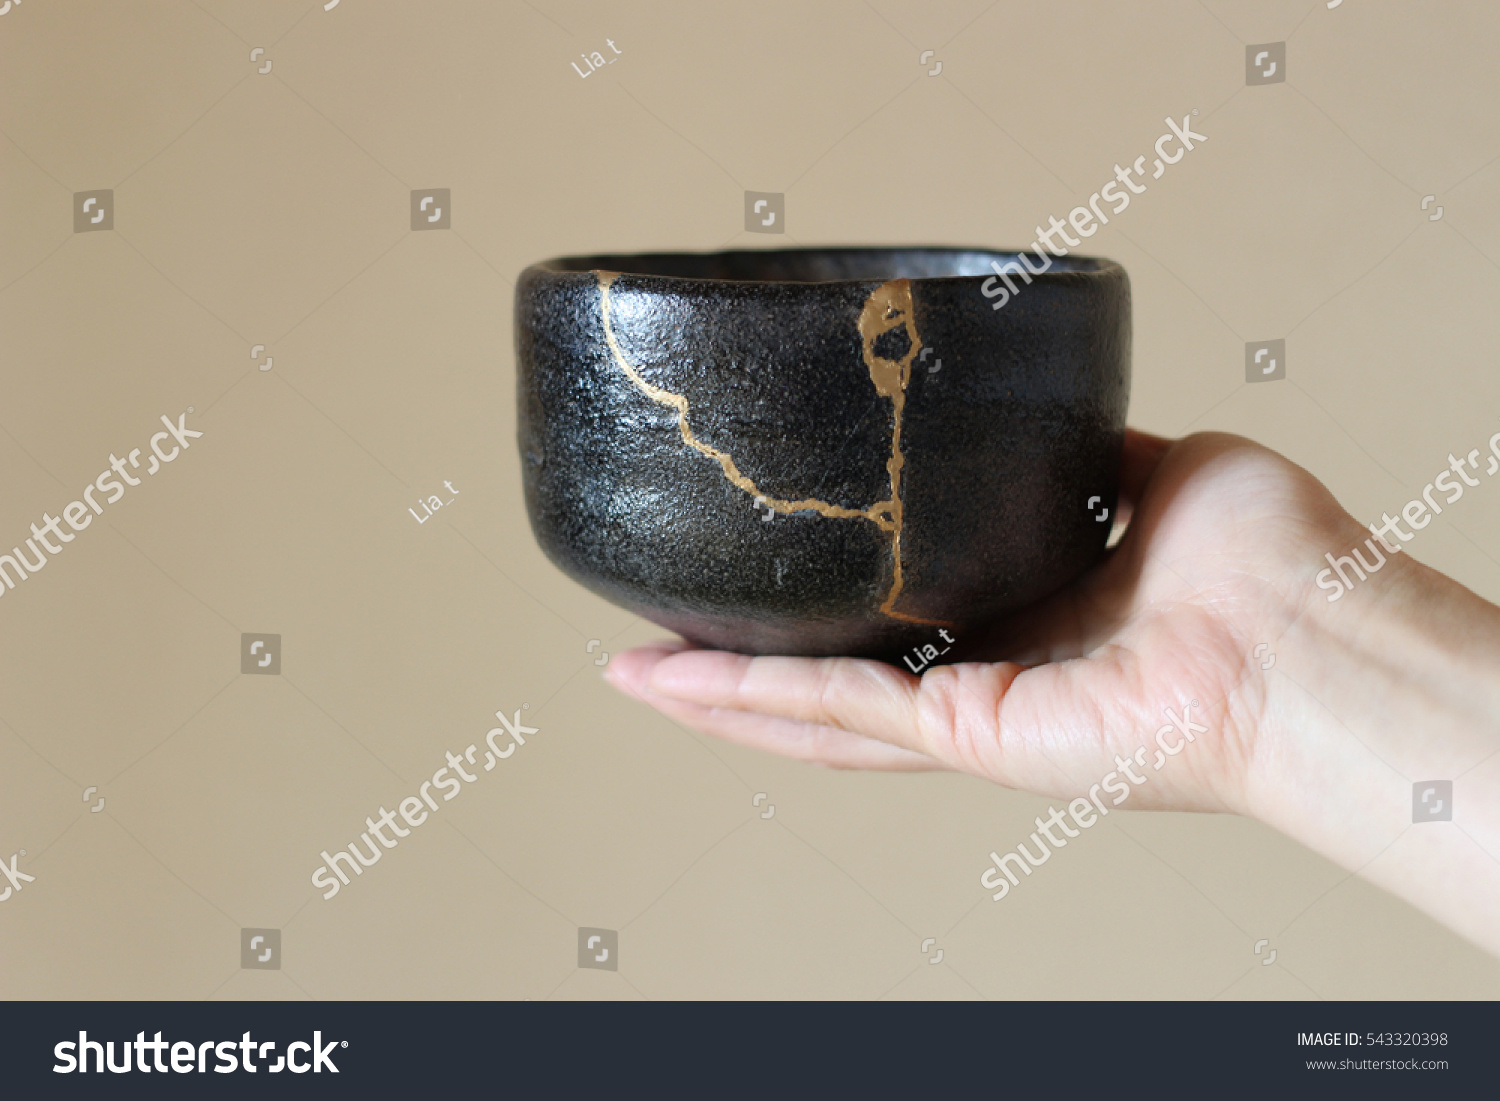 An image of a small, black Japanese bowl with a crack running through it. The crack has been mended or filled in with gold.